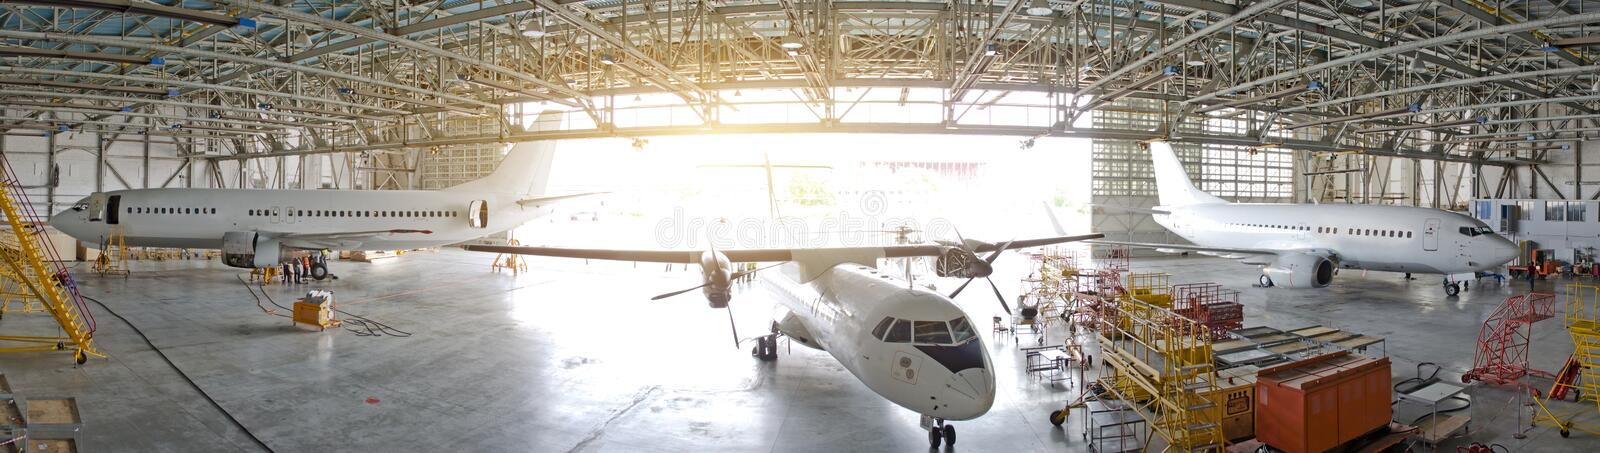 Three passenger aircraft in a hangar with an open gate for service, view of the panorama. royalty free stock photos